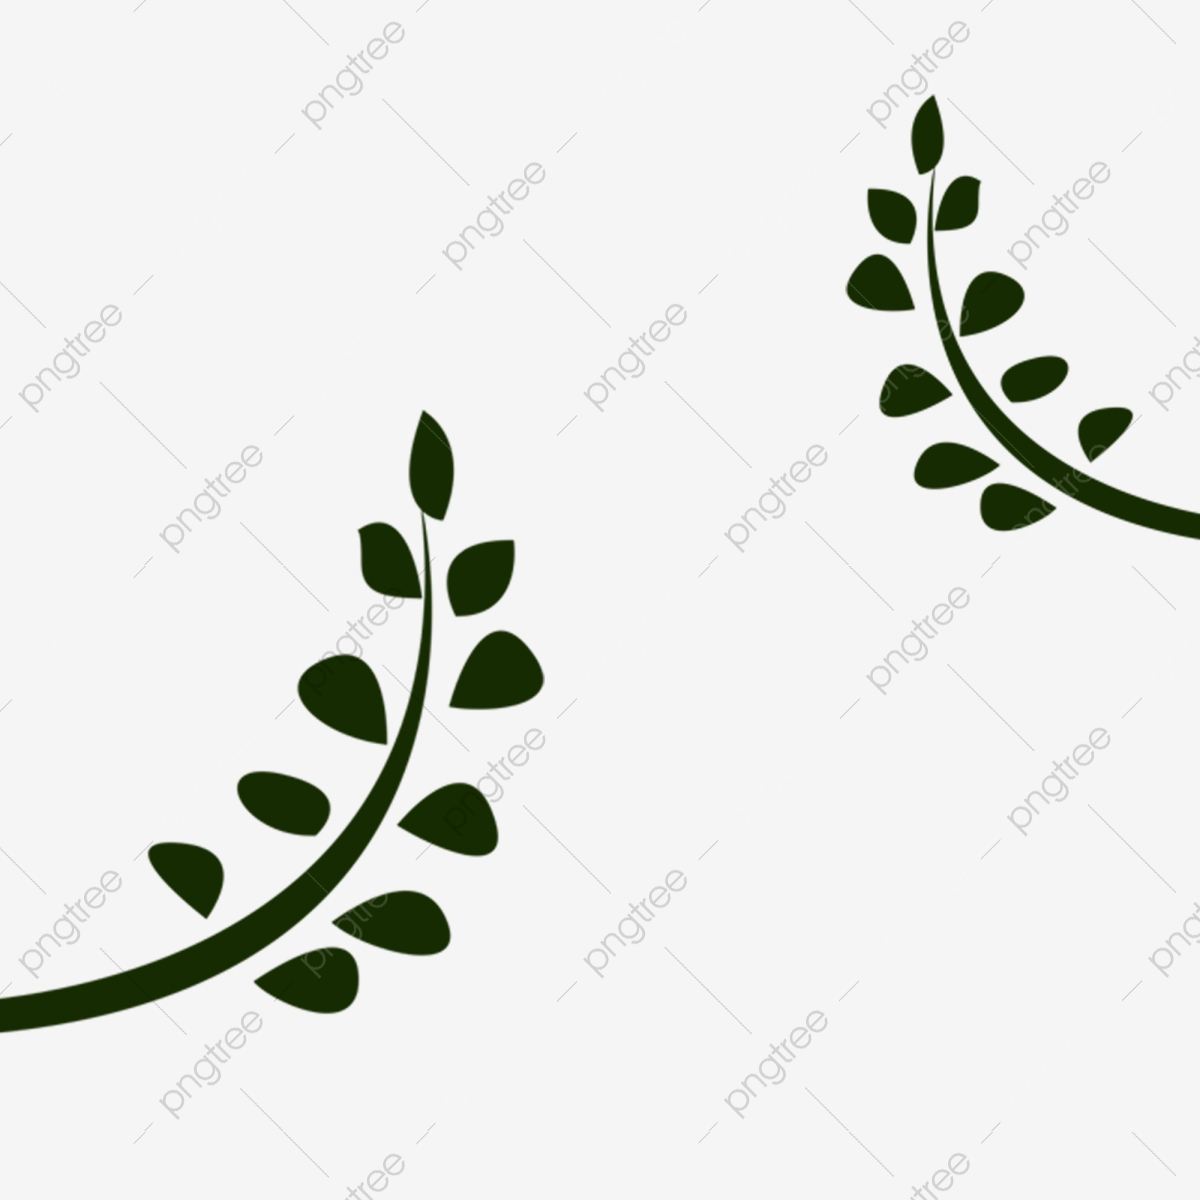 Plant Leaf Cartoon Png Material Plant Leaves Hand Drawn Plant Leaves Cartoon Plant Leaves Png Transparent Clipart Image And Psd File For Free Download Sticky suit leaf collection system. https pngtree com freepng plant leaf cartoon png material 4403678 html